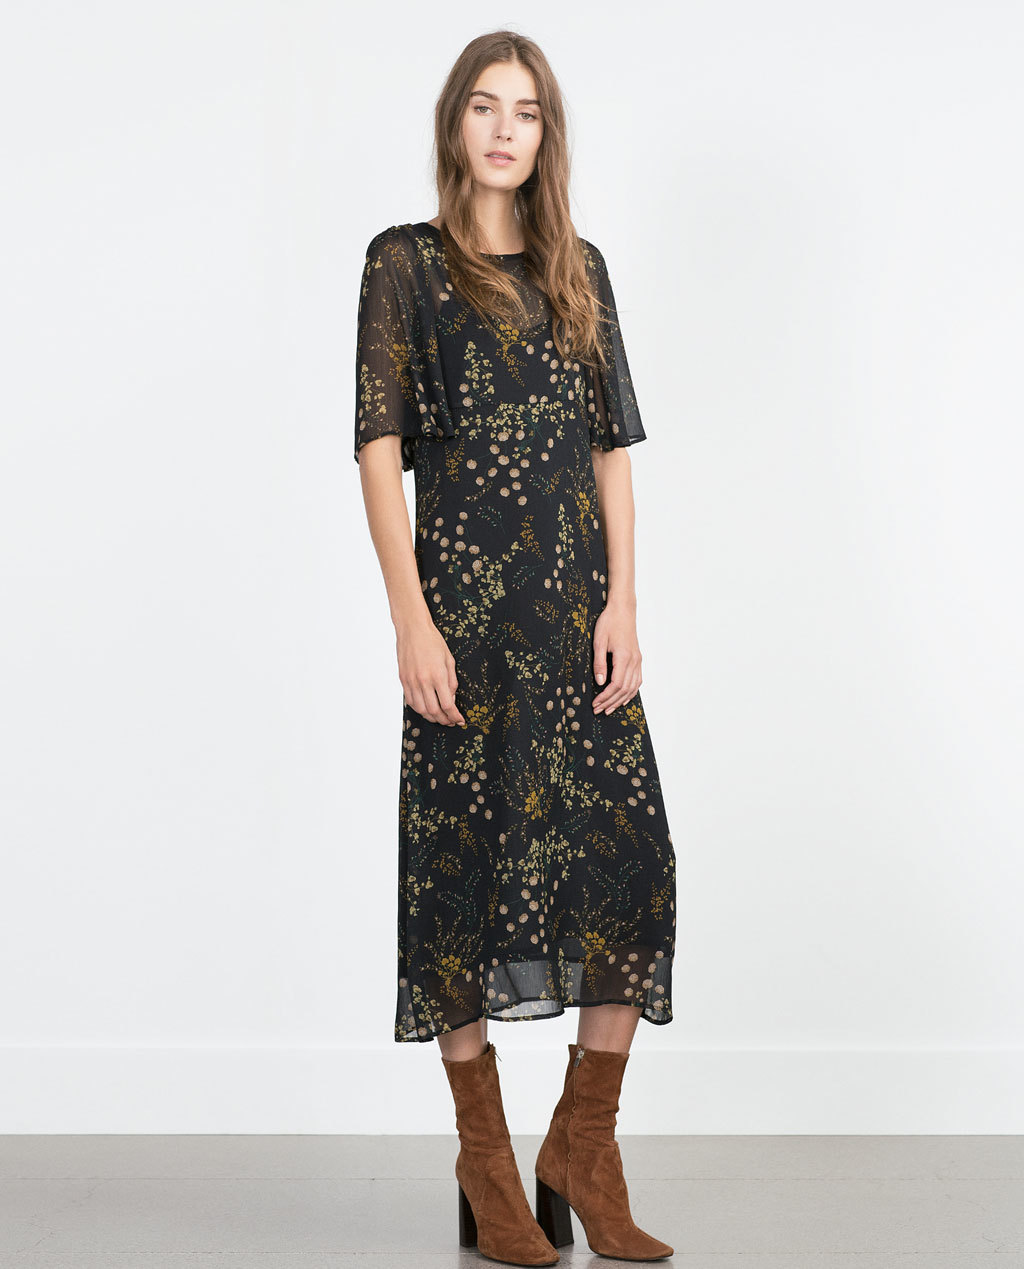 Printed Dress - style: shift; length: calf length; neckline: round neck; secondary colour: mustard; predominant colour: black; occasions: casual, creative work; fit: soft a-line; fibres: polyester/polyamide - 100%; sleeve length: half sleeve; sleeve style: standard; texture group: sheer fabrics/chiffon/organza etc.; pattern type: fabric; pattern size: standard; pattern: florals; multicoloured: multicoloured; season: a/w 2015; trends: folky 70s